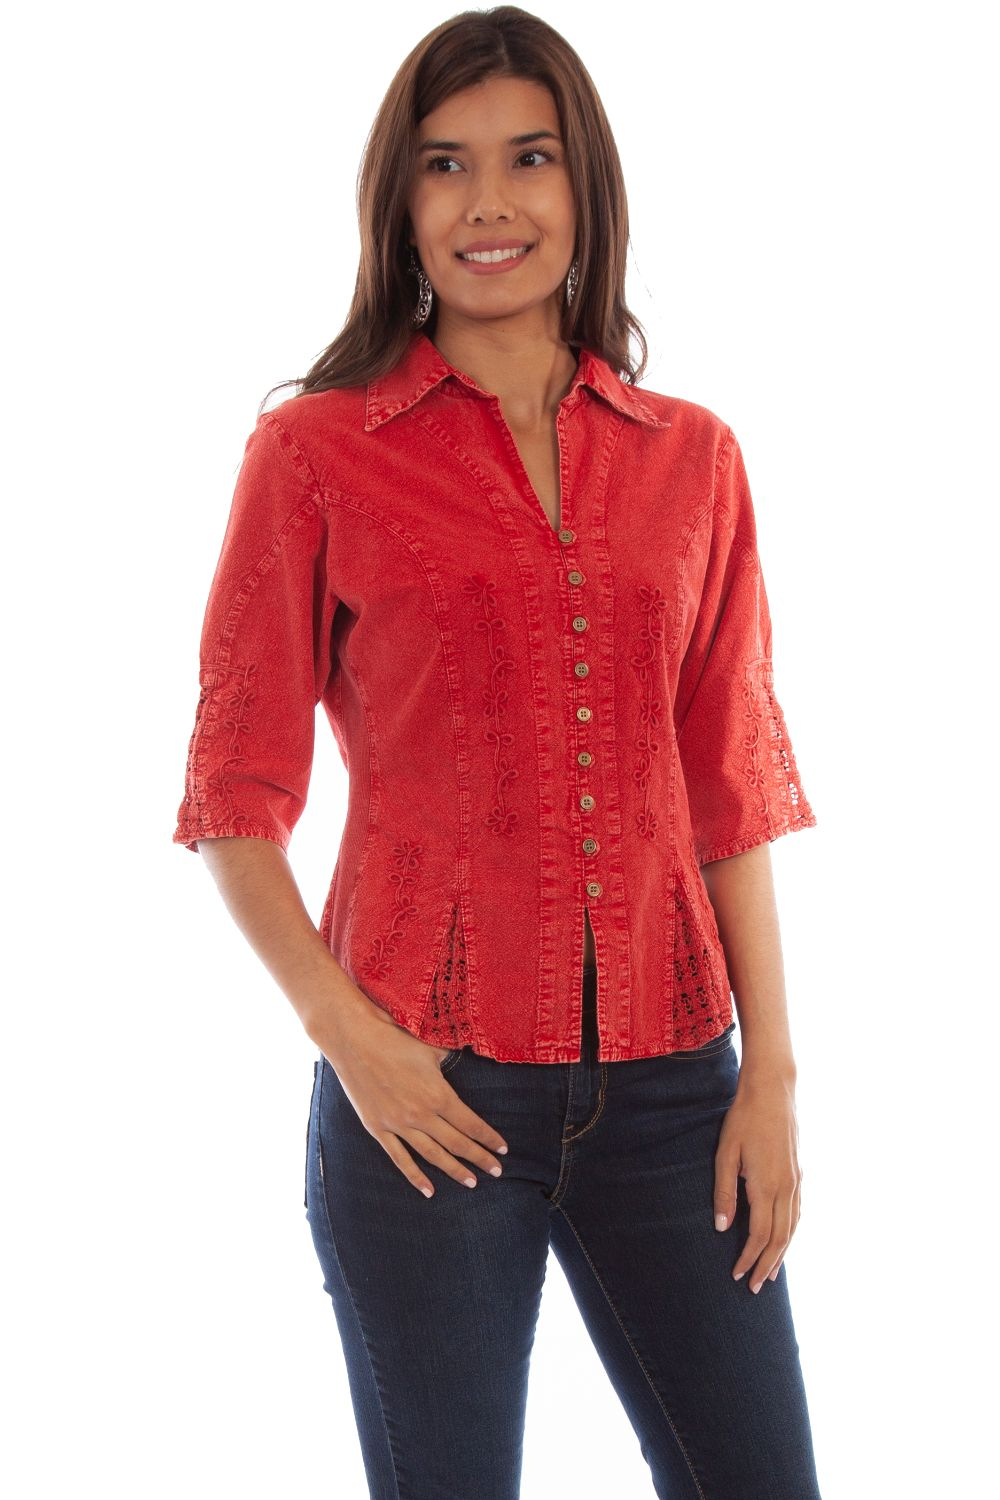 3/4 Sleeve Peruvian Cotton Blouse - Psl-064 - Brick. (ships in 1-2 days). #F0_PSL-064_BRI